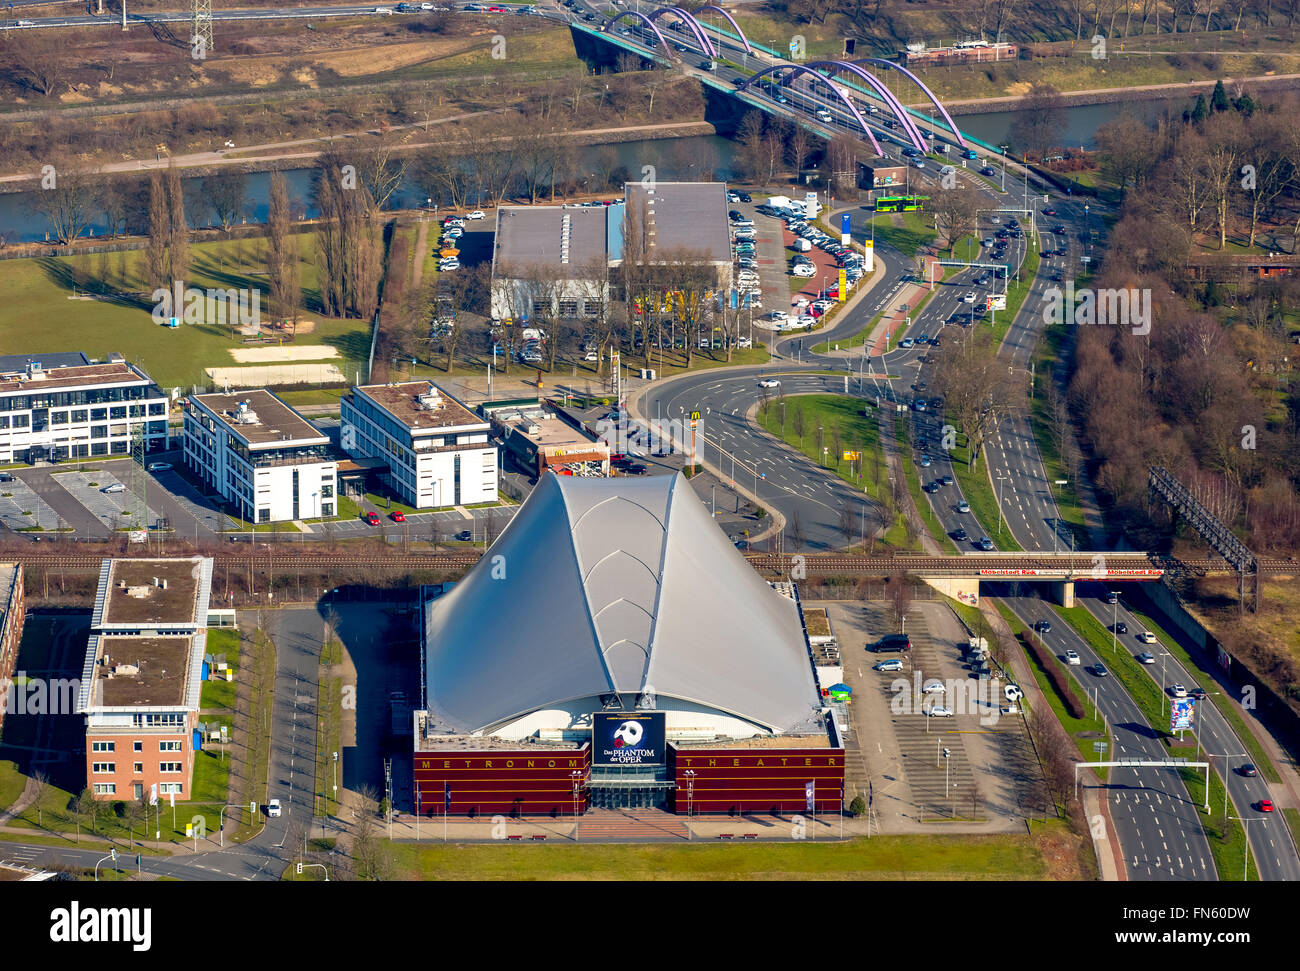 Aerial view, Metronome Theater at the Centro Oberhausen, Oberhausen, Stage company, Ruhr region, North Rhine Westphalia, - Stock Image